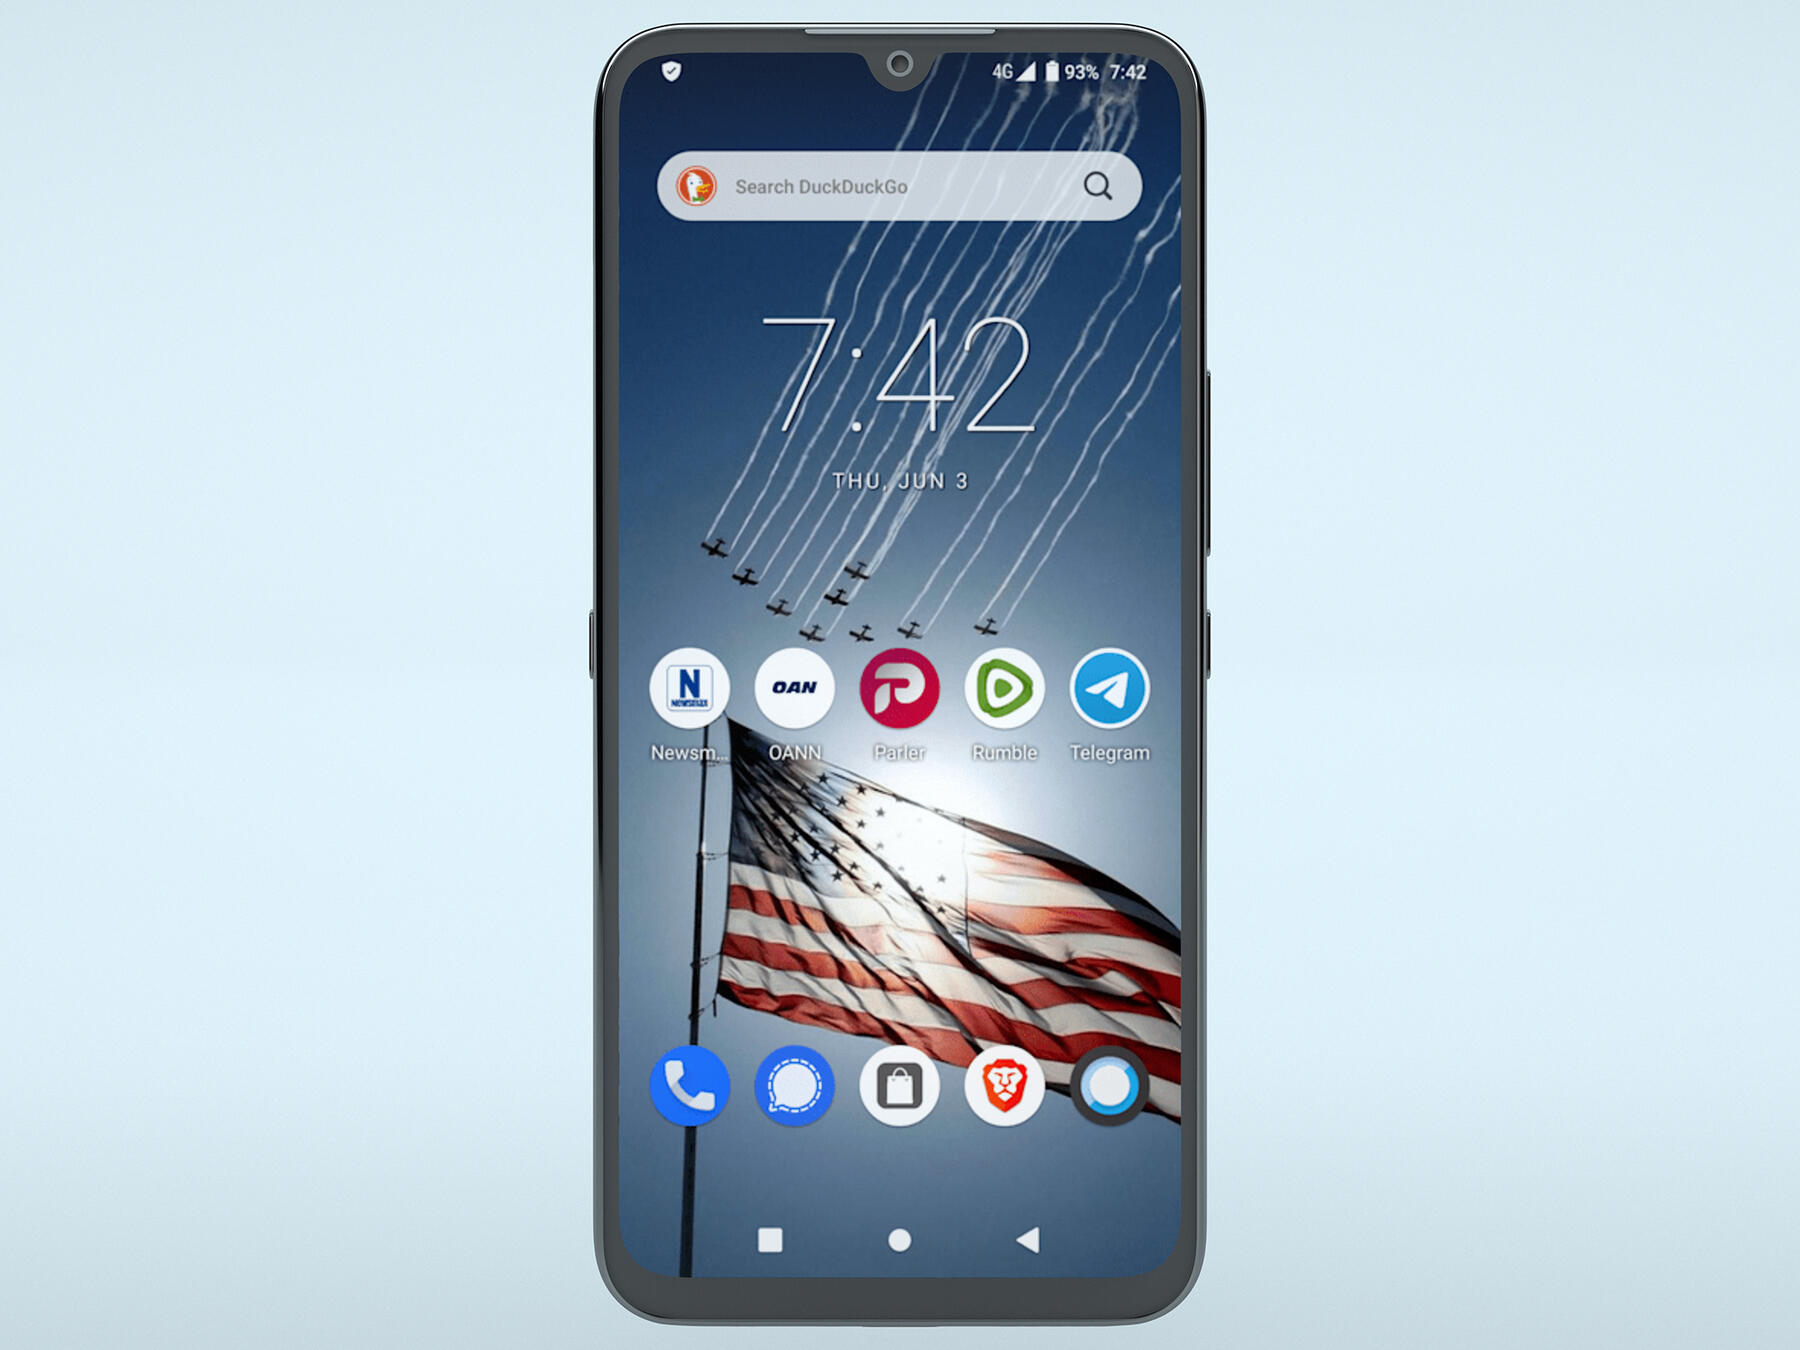 Freedom Phone: Why you should avoid it and what else to know     - CNET